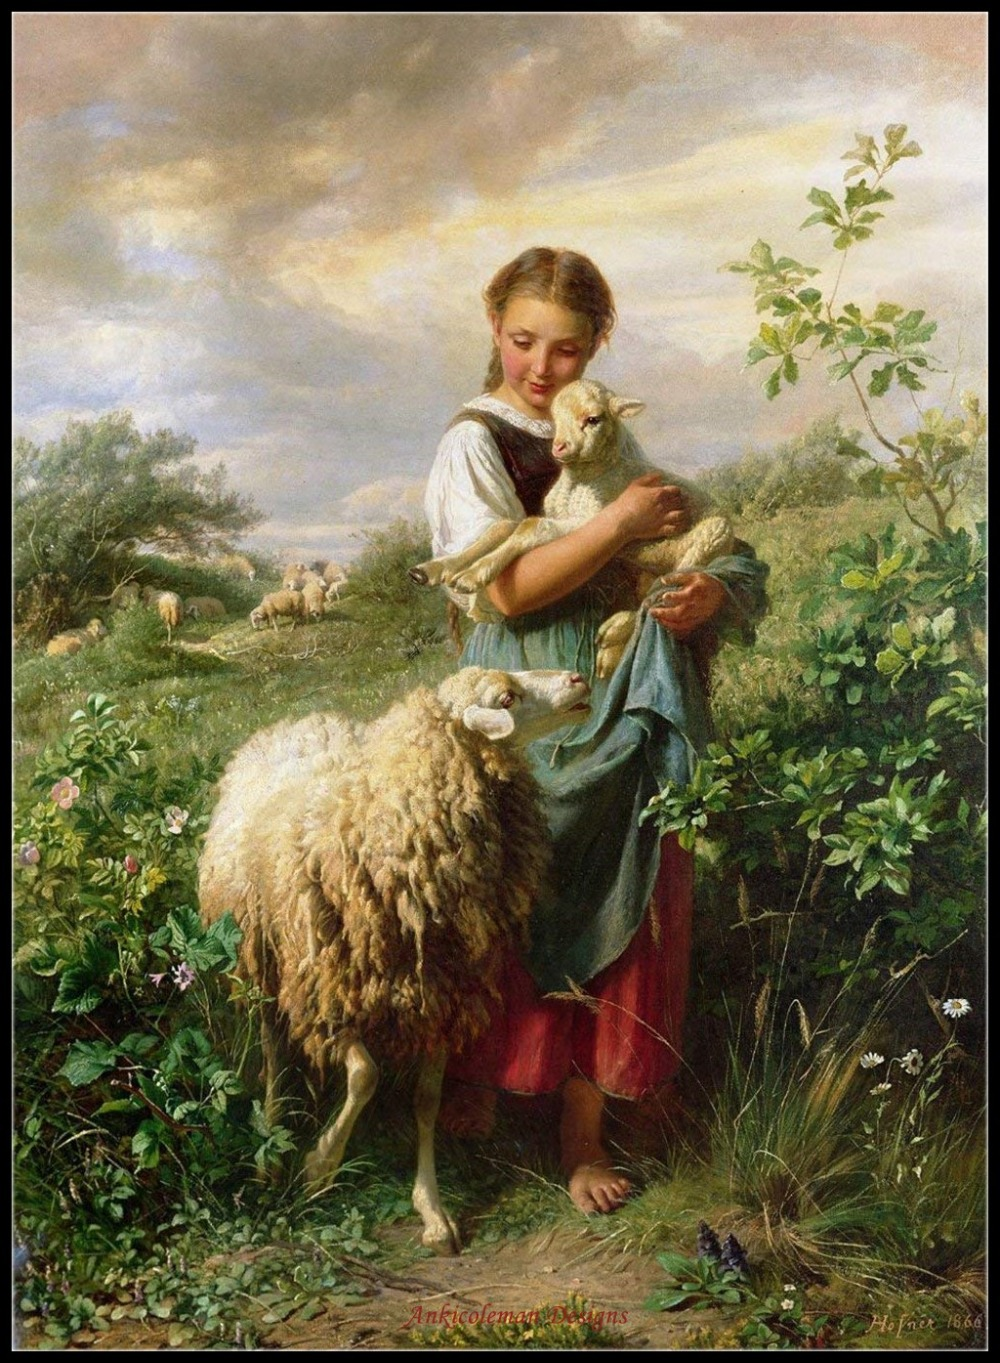 The Shepherdess - Counted Cross Stitch Kits - DIY Handmade Needlework For Embroidery 14 Ct Cross Stitch Sets DMC Color